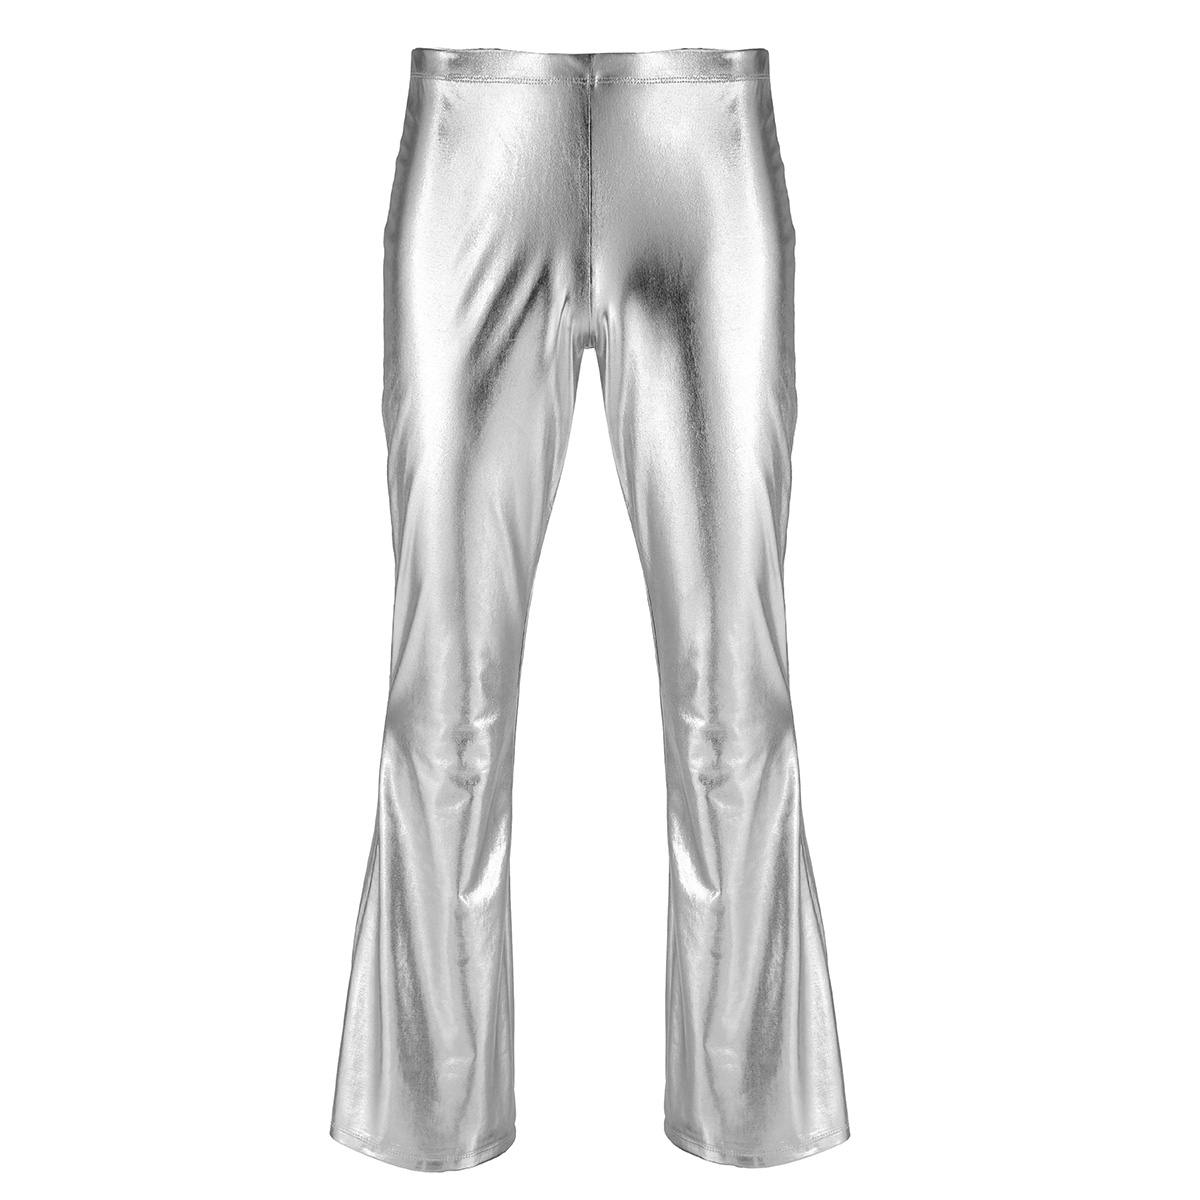 ChicTry Adults Mens Shiny Metallic Disco Pants with Bell Bottom Flared Long Pants Dude Costume Trousers for 70's Theme Parties 46